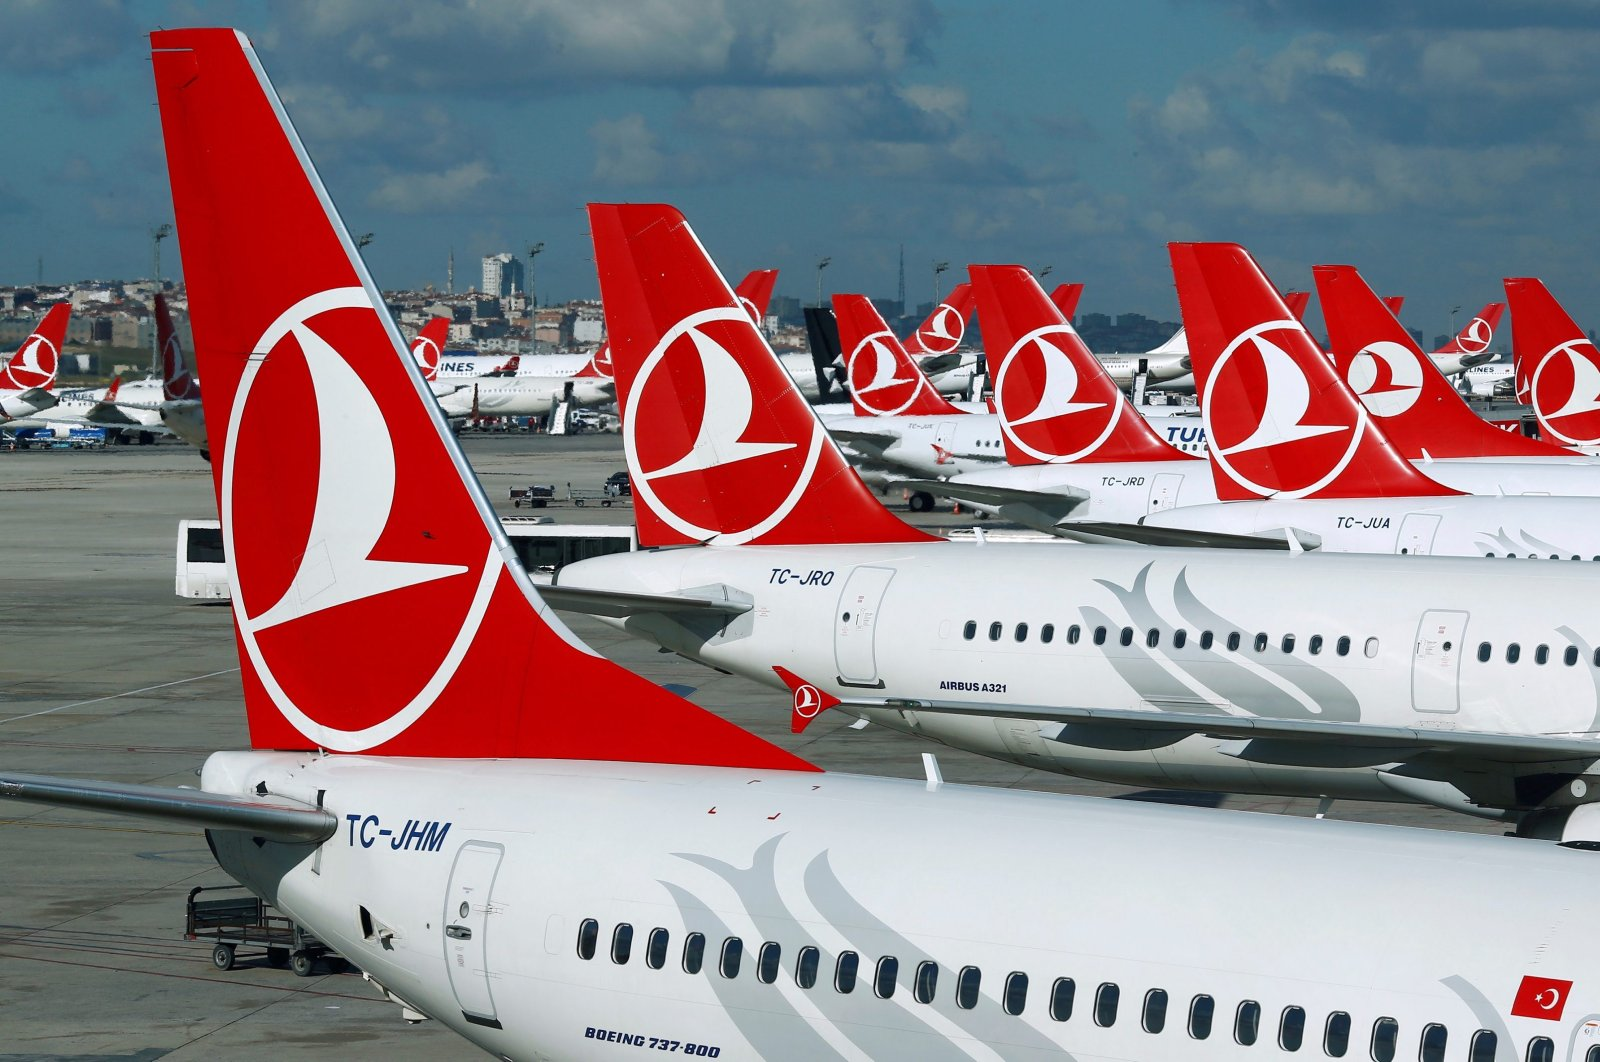 Turkish Airlines aircraft are parked at the Ataturk International airport in Istanbul, Turkey, Dec. 3, 2015. (Reuters Photo)